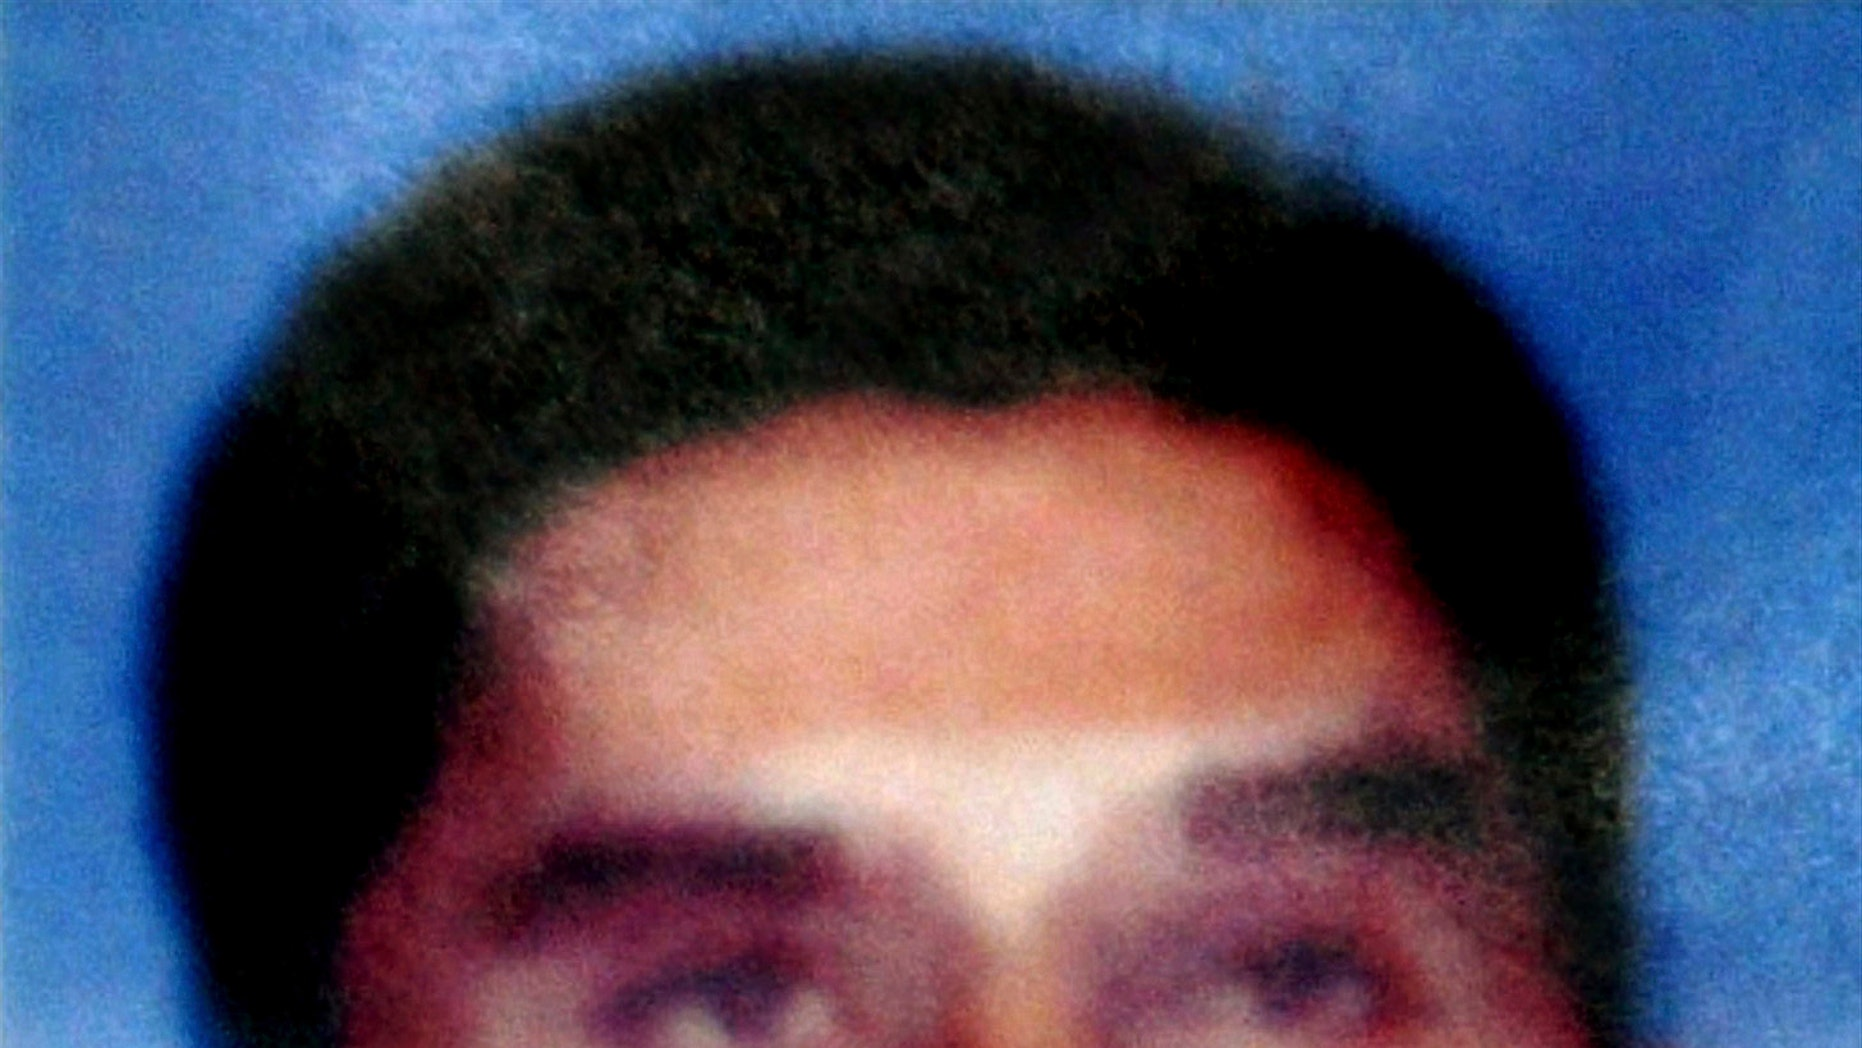 FILE - In this file photo released by Indonesian National Police on Aug. 21, 2003, Southeast Asian terror mastermind Hambali is shown.